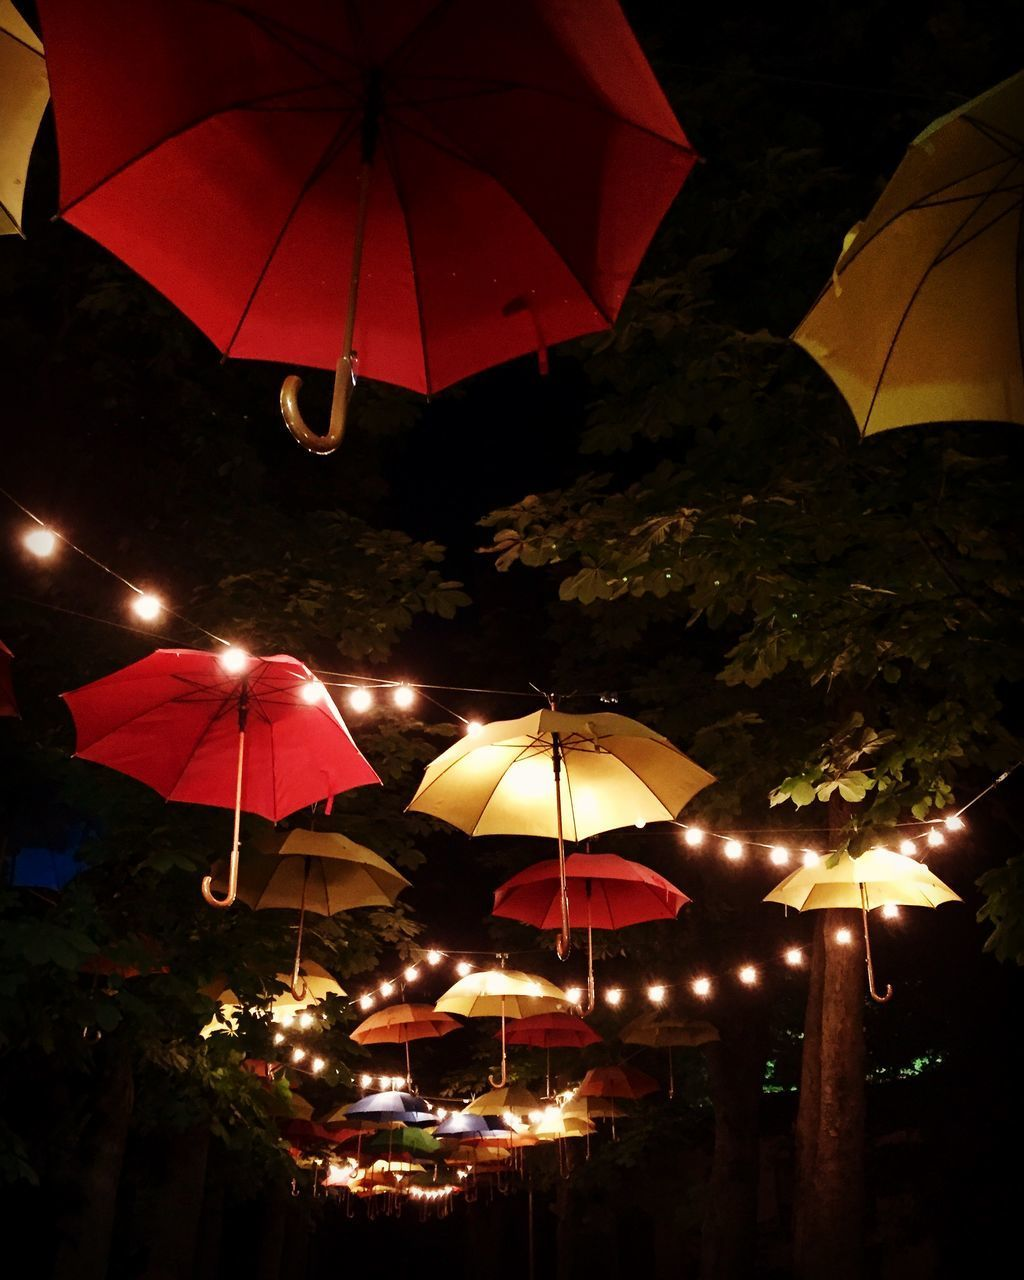 illuminated, protection, umbrella, security, night, lighting equipment, parasol, no people, hanging, nature, tree, outdoors, glowing, plant, decoration, safety, low angle view, water, city, light